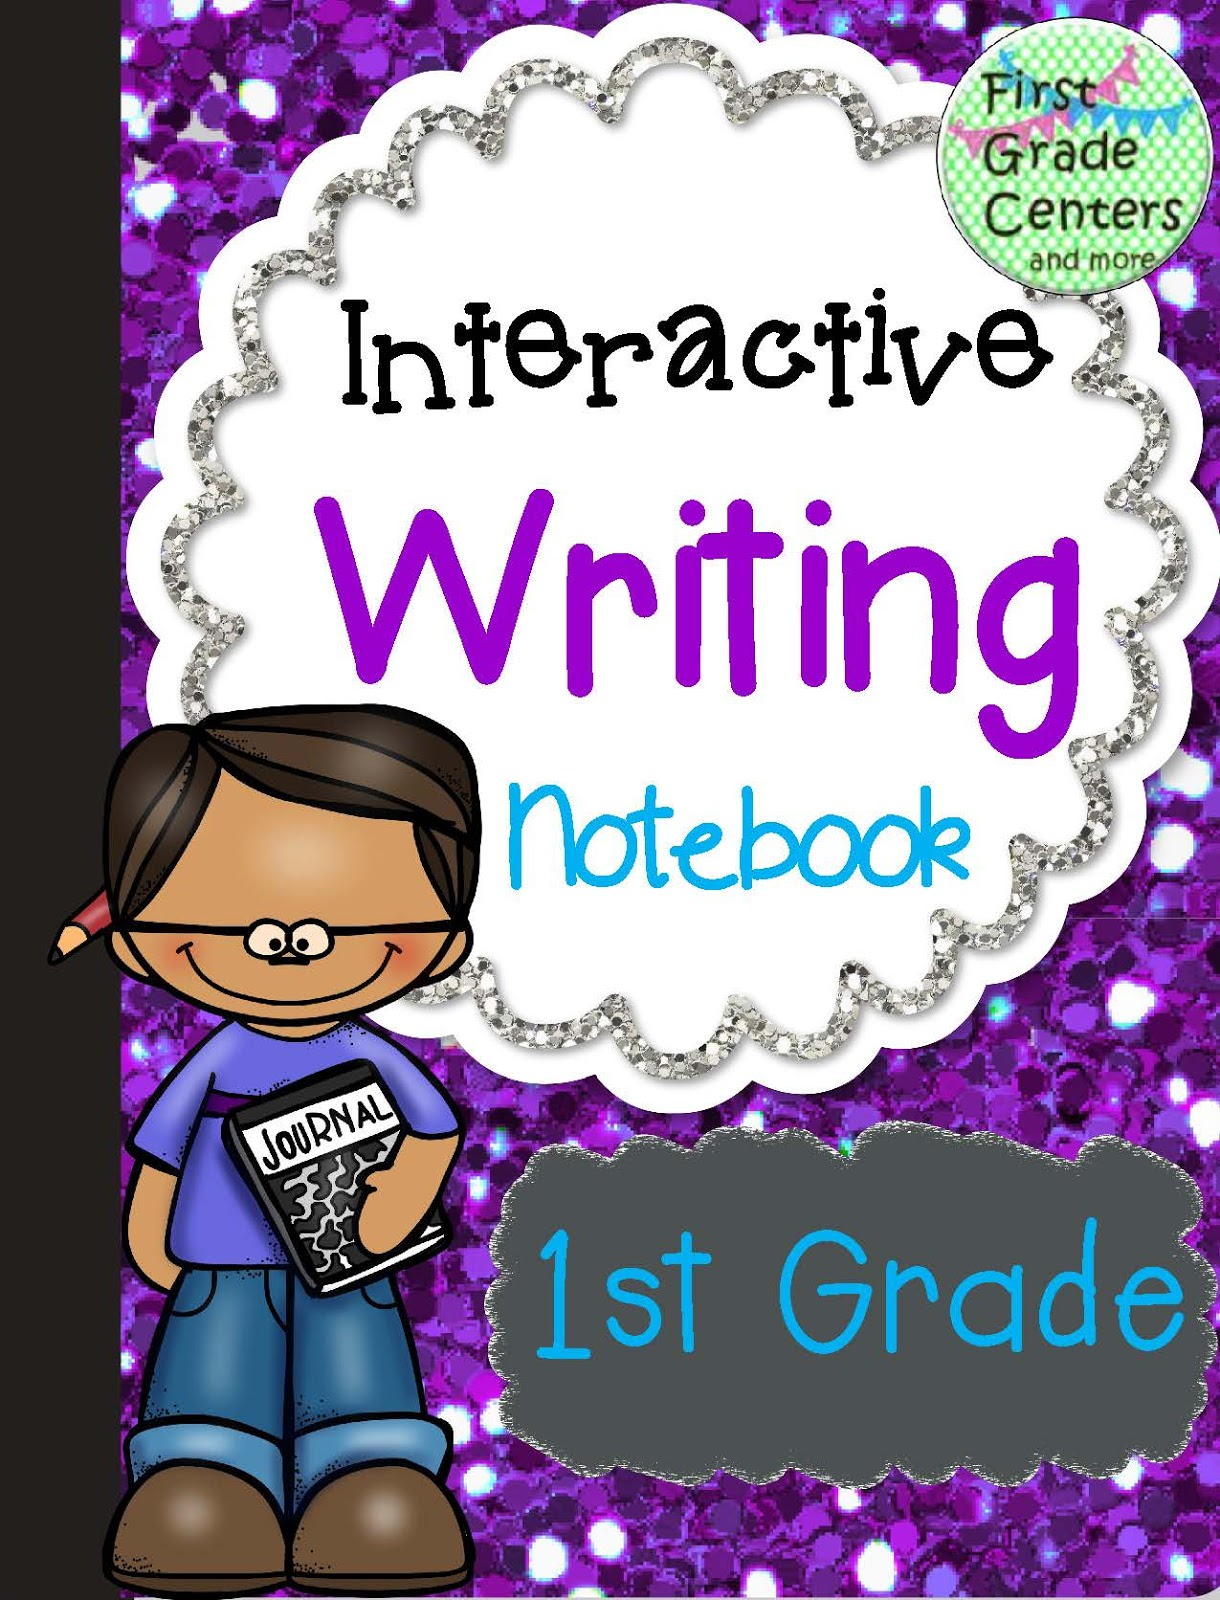 Worksheet First Grade 6 tips for teaching first grade writing centers and more more